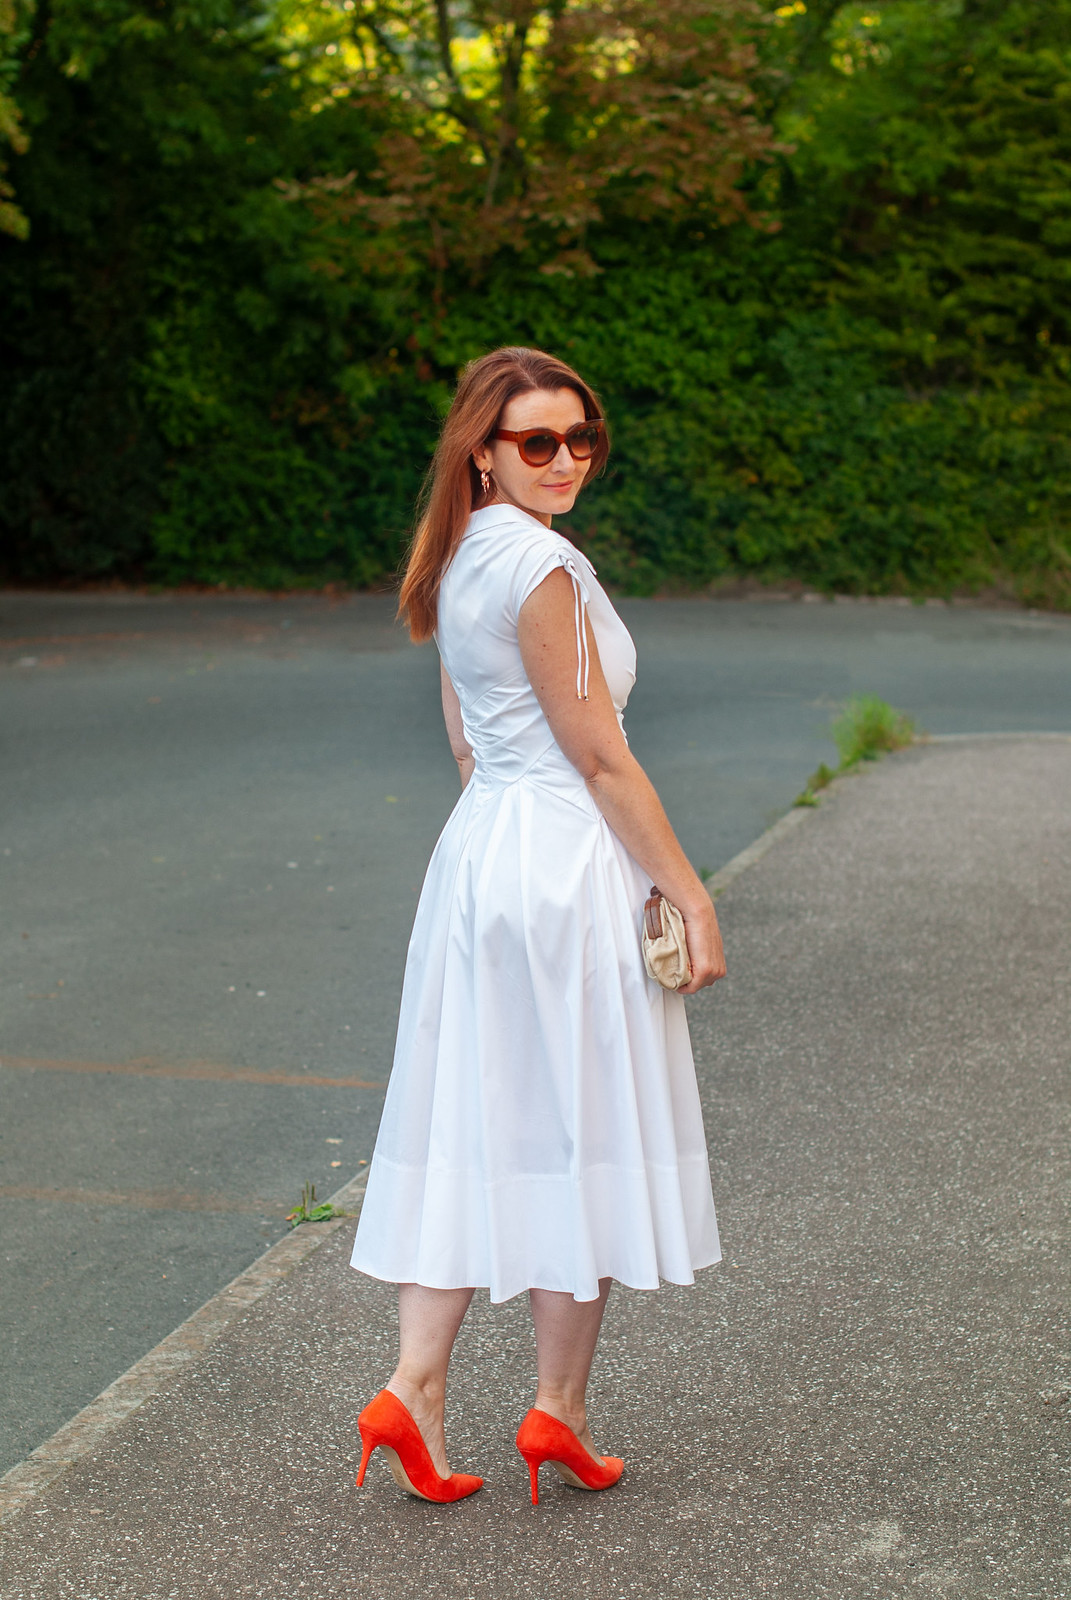 Channelling Marilyn Monroe in a White 1950s Style Dress With Orange Heels | Not Dressed As Lamb, over 40 style, over 40 fashion